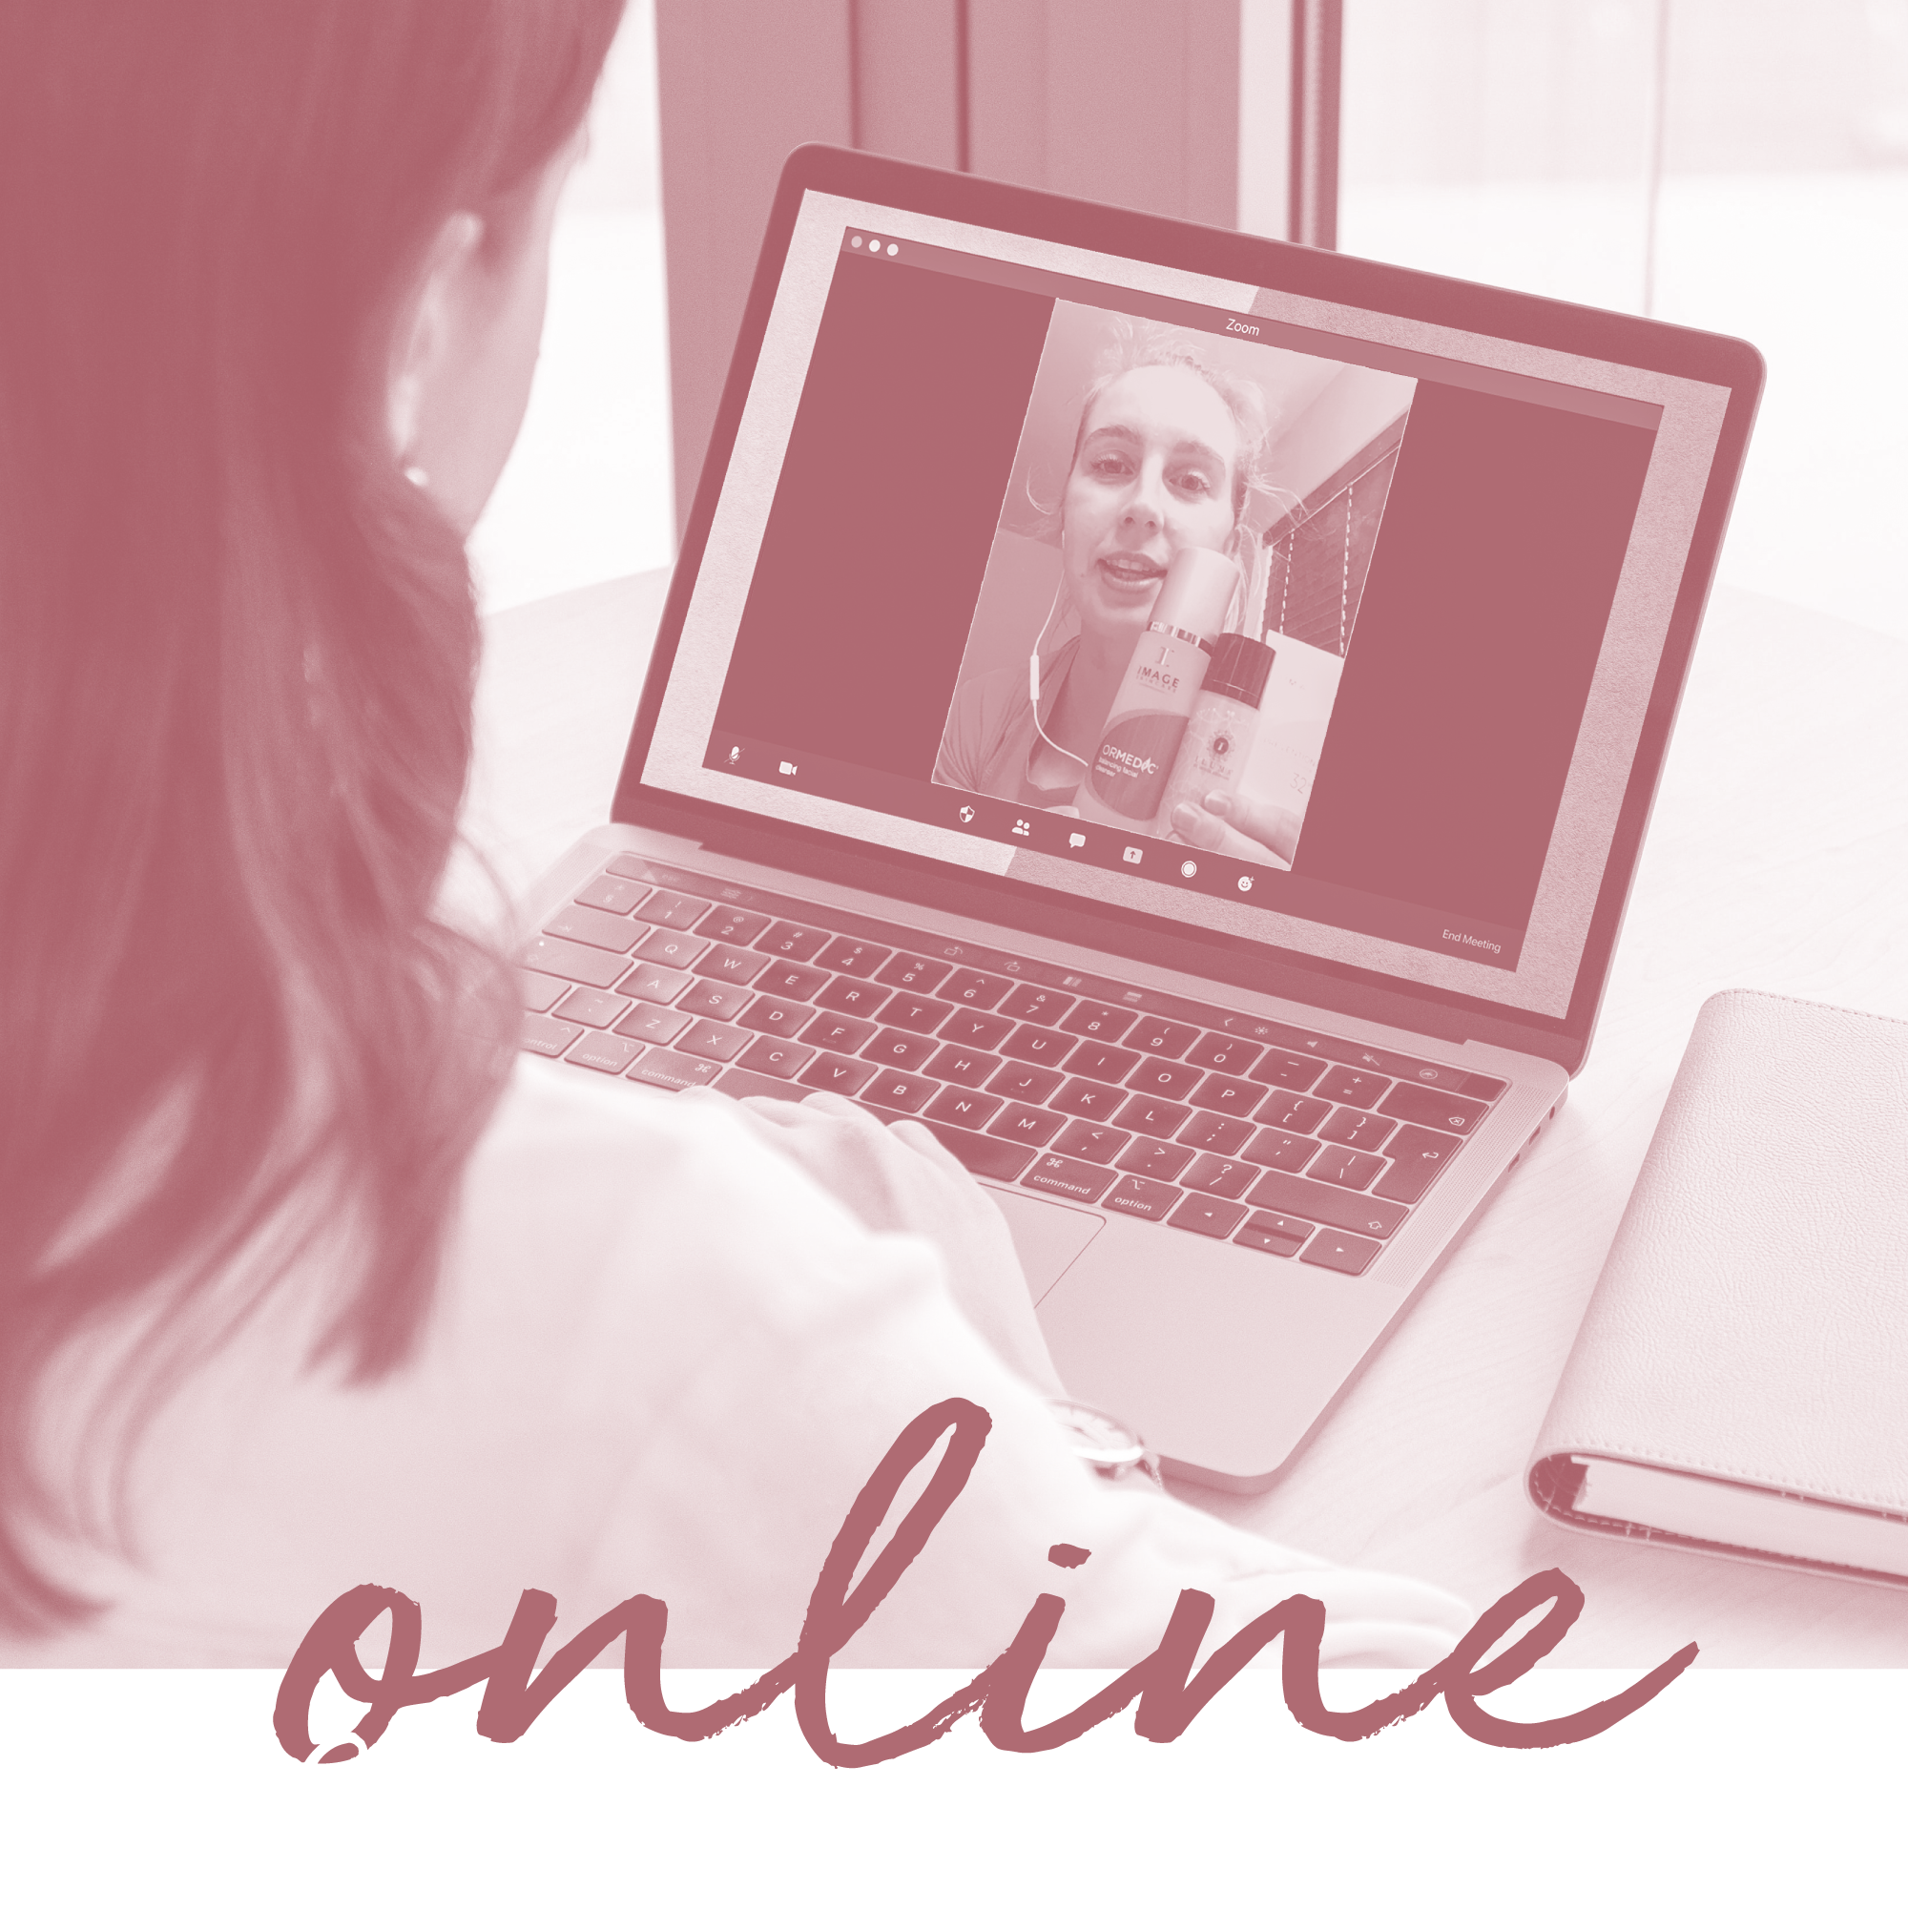 Online Skin Consultations with Skin Experts at Eyrebrushed